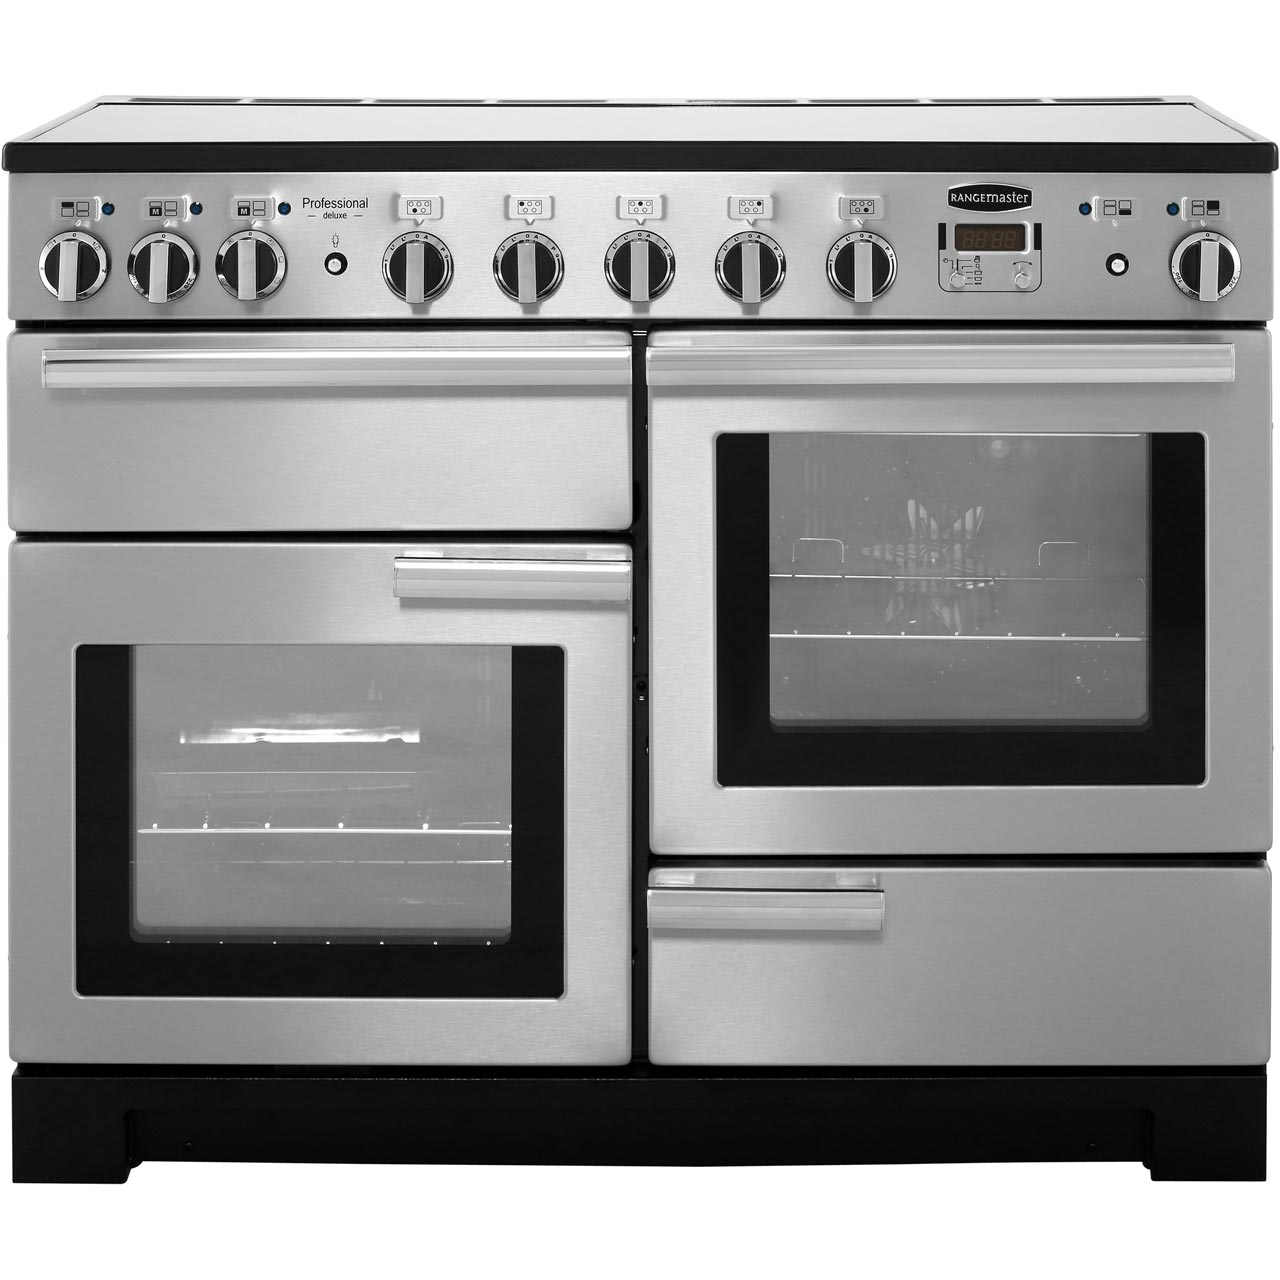 Pdl110eiss C Ss Rangemaster Electric Range Cooker Wiring Zones Kitchen